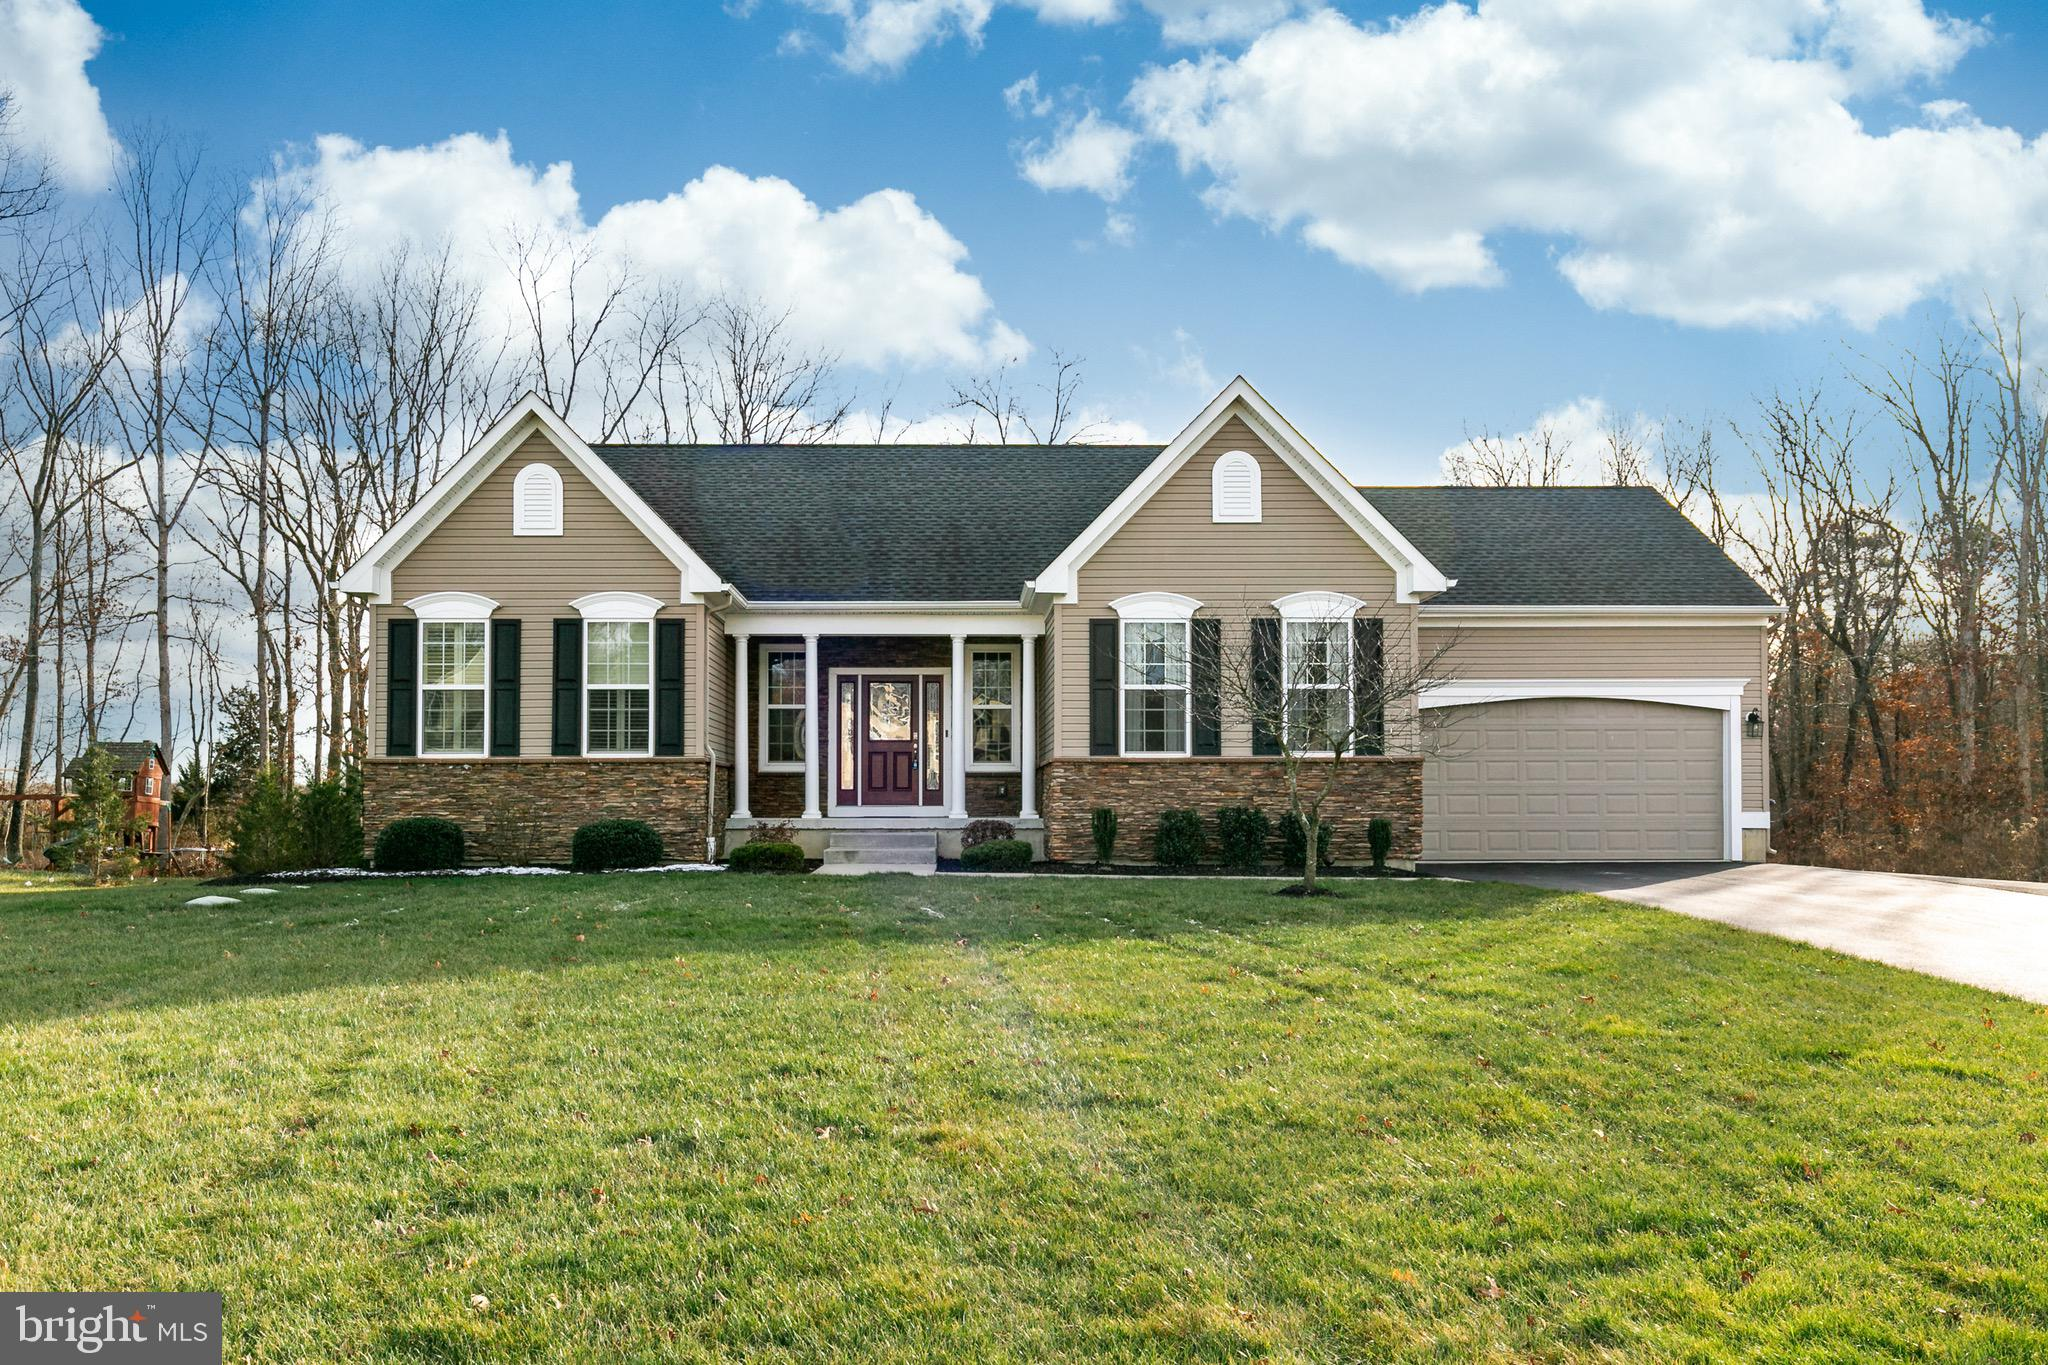 125 WHITE TAIL PASS, FRANKLINVILLE, NJ 08322